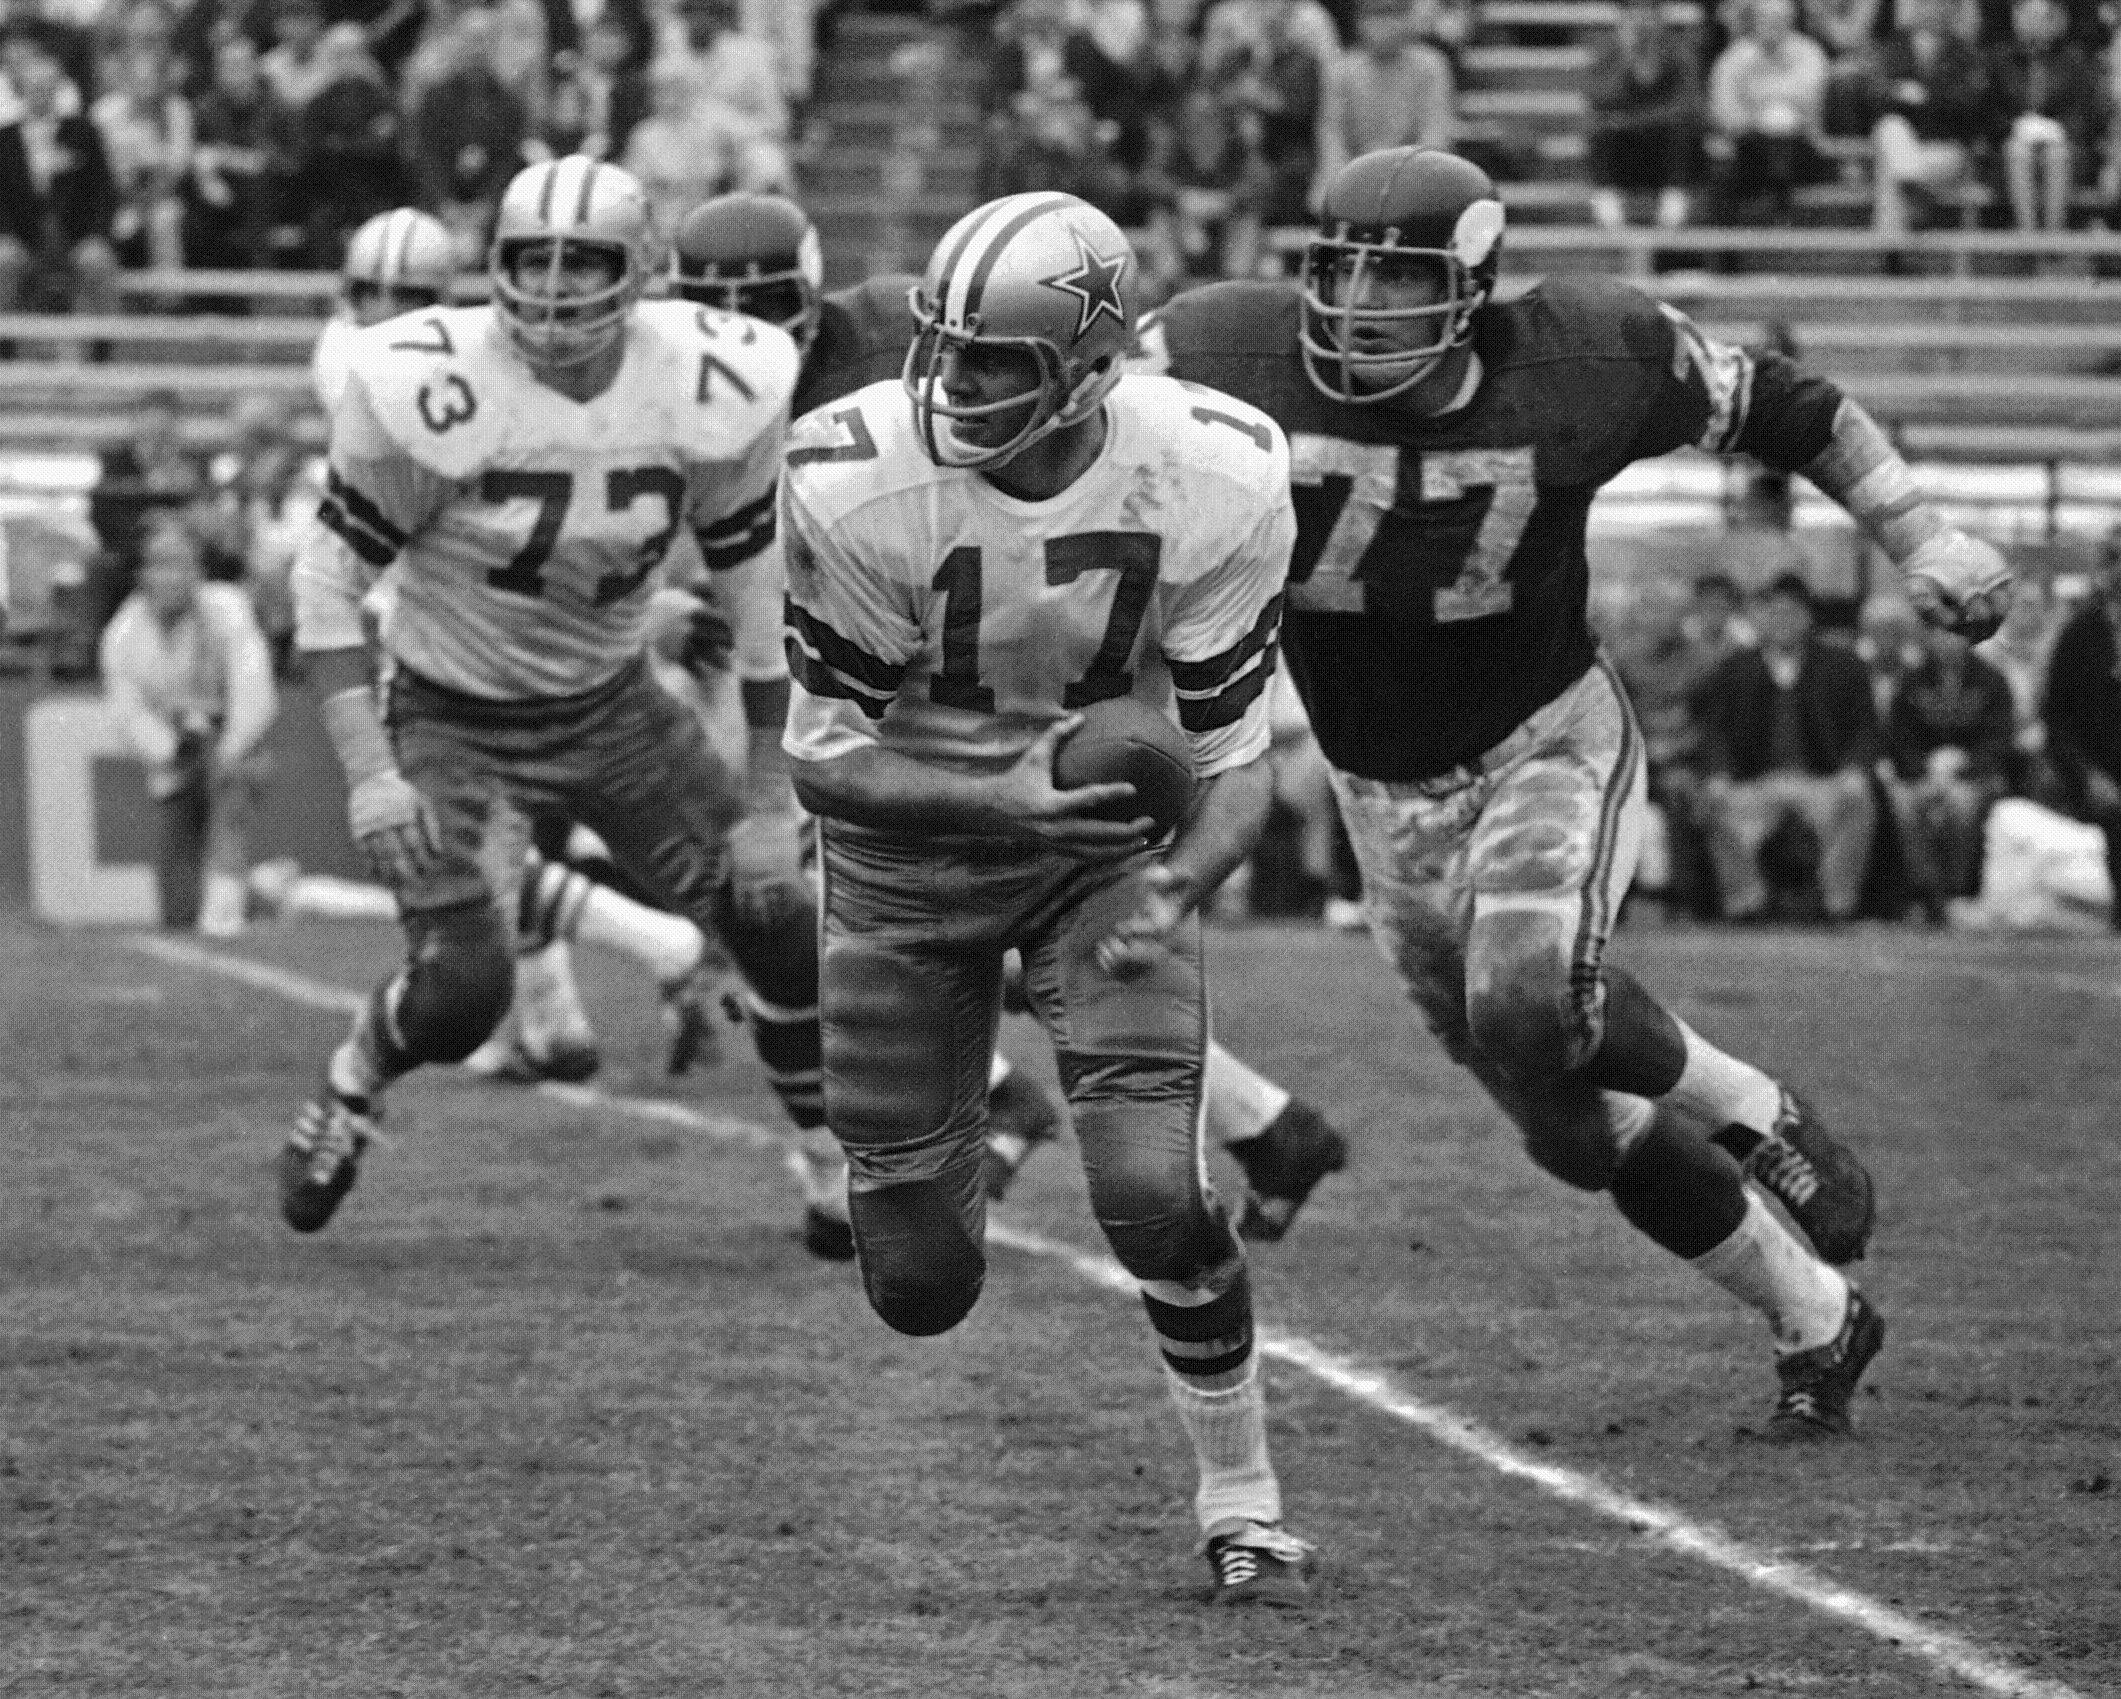 This Jan. 5, 1969, file photo shows Dallas Cowboys quarterback Don Meredith (17) running for 7-yards in the second quarter of an NFL playoff game, as Minnesota Vikings defensive tackle Gary Larsen (77) prepares to make the tackle, in Miami.